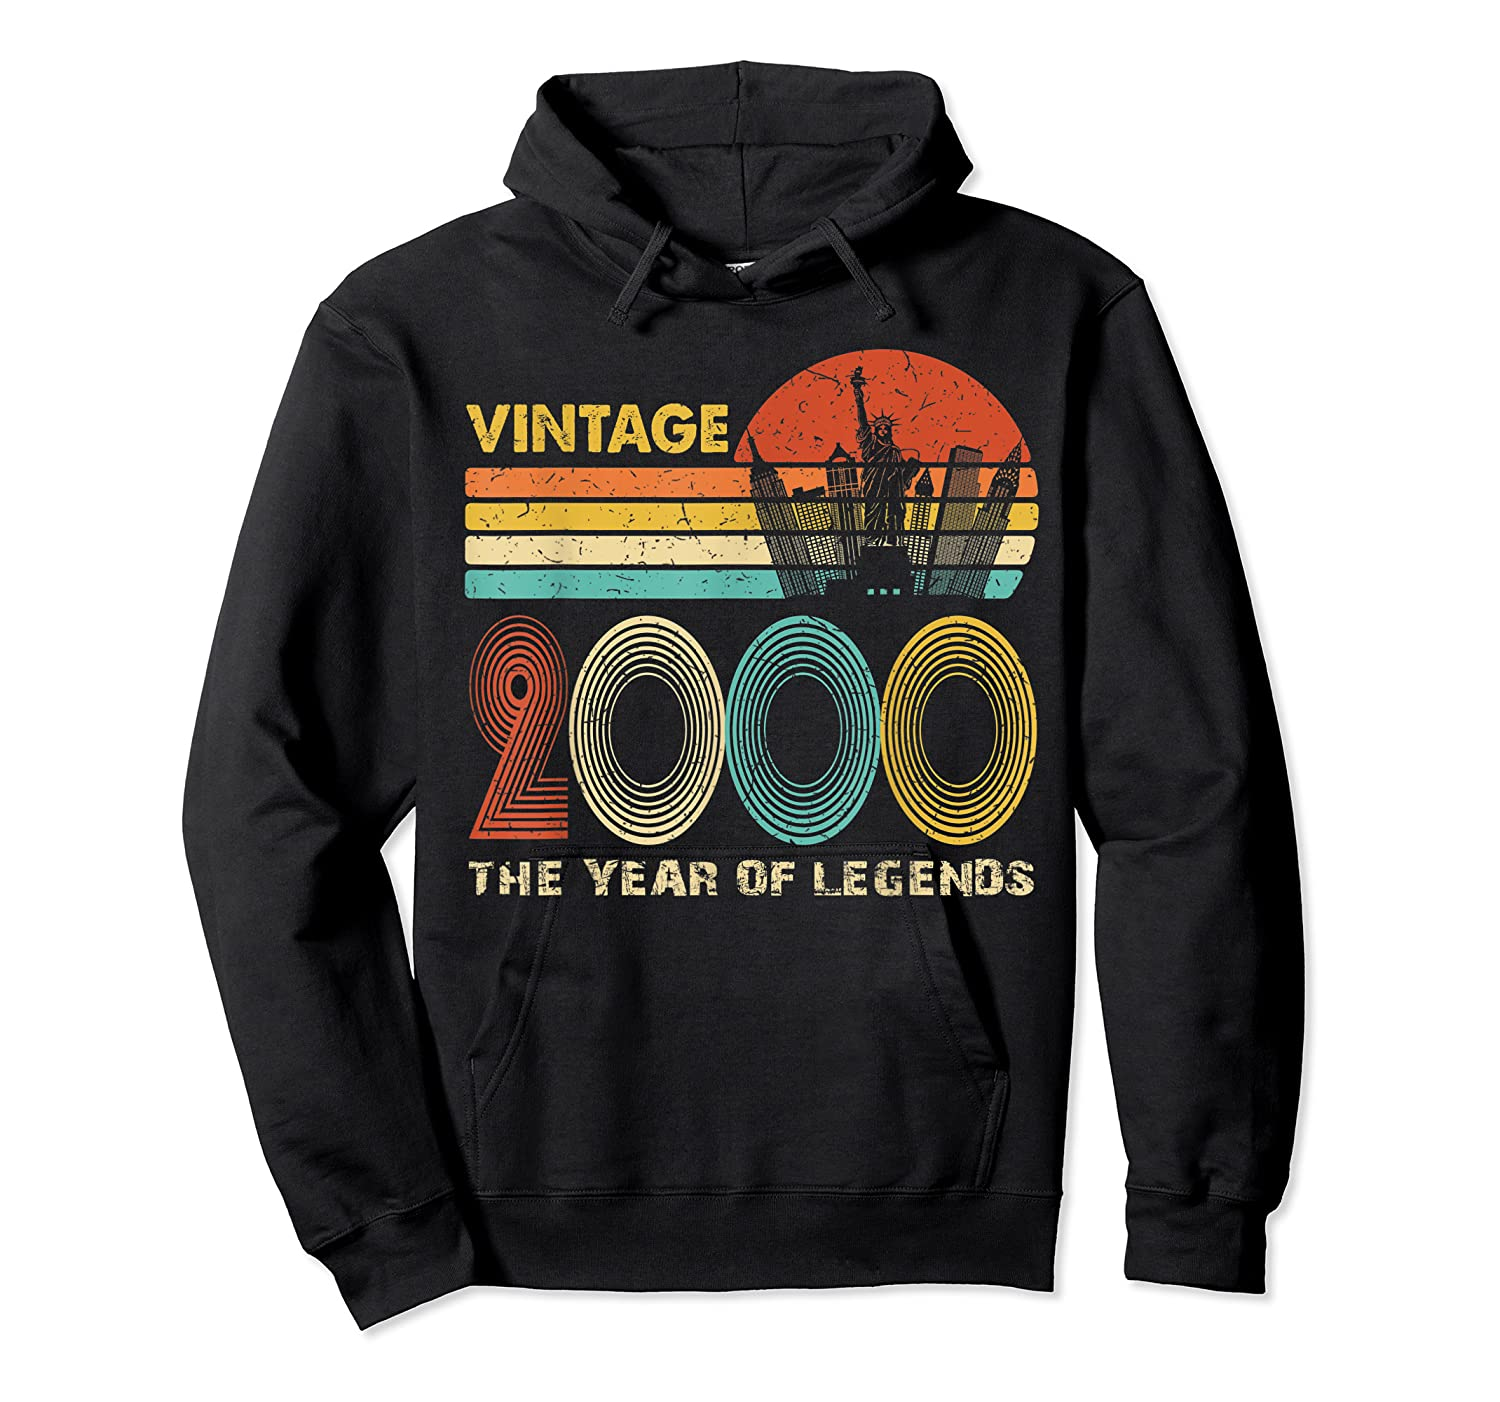 19th Birthday Gift Vintage 2000 T-shirt 19 Years Old T-shirt Unisex Pullover Hoodie